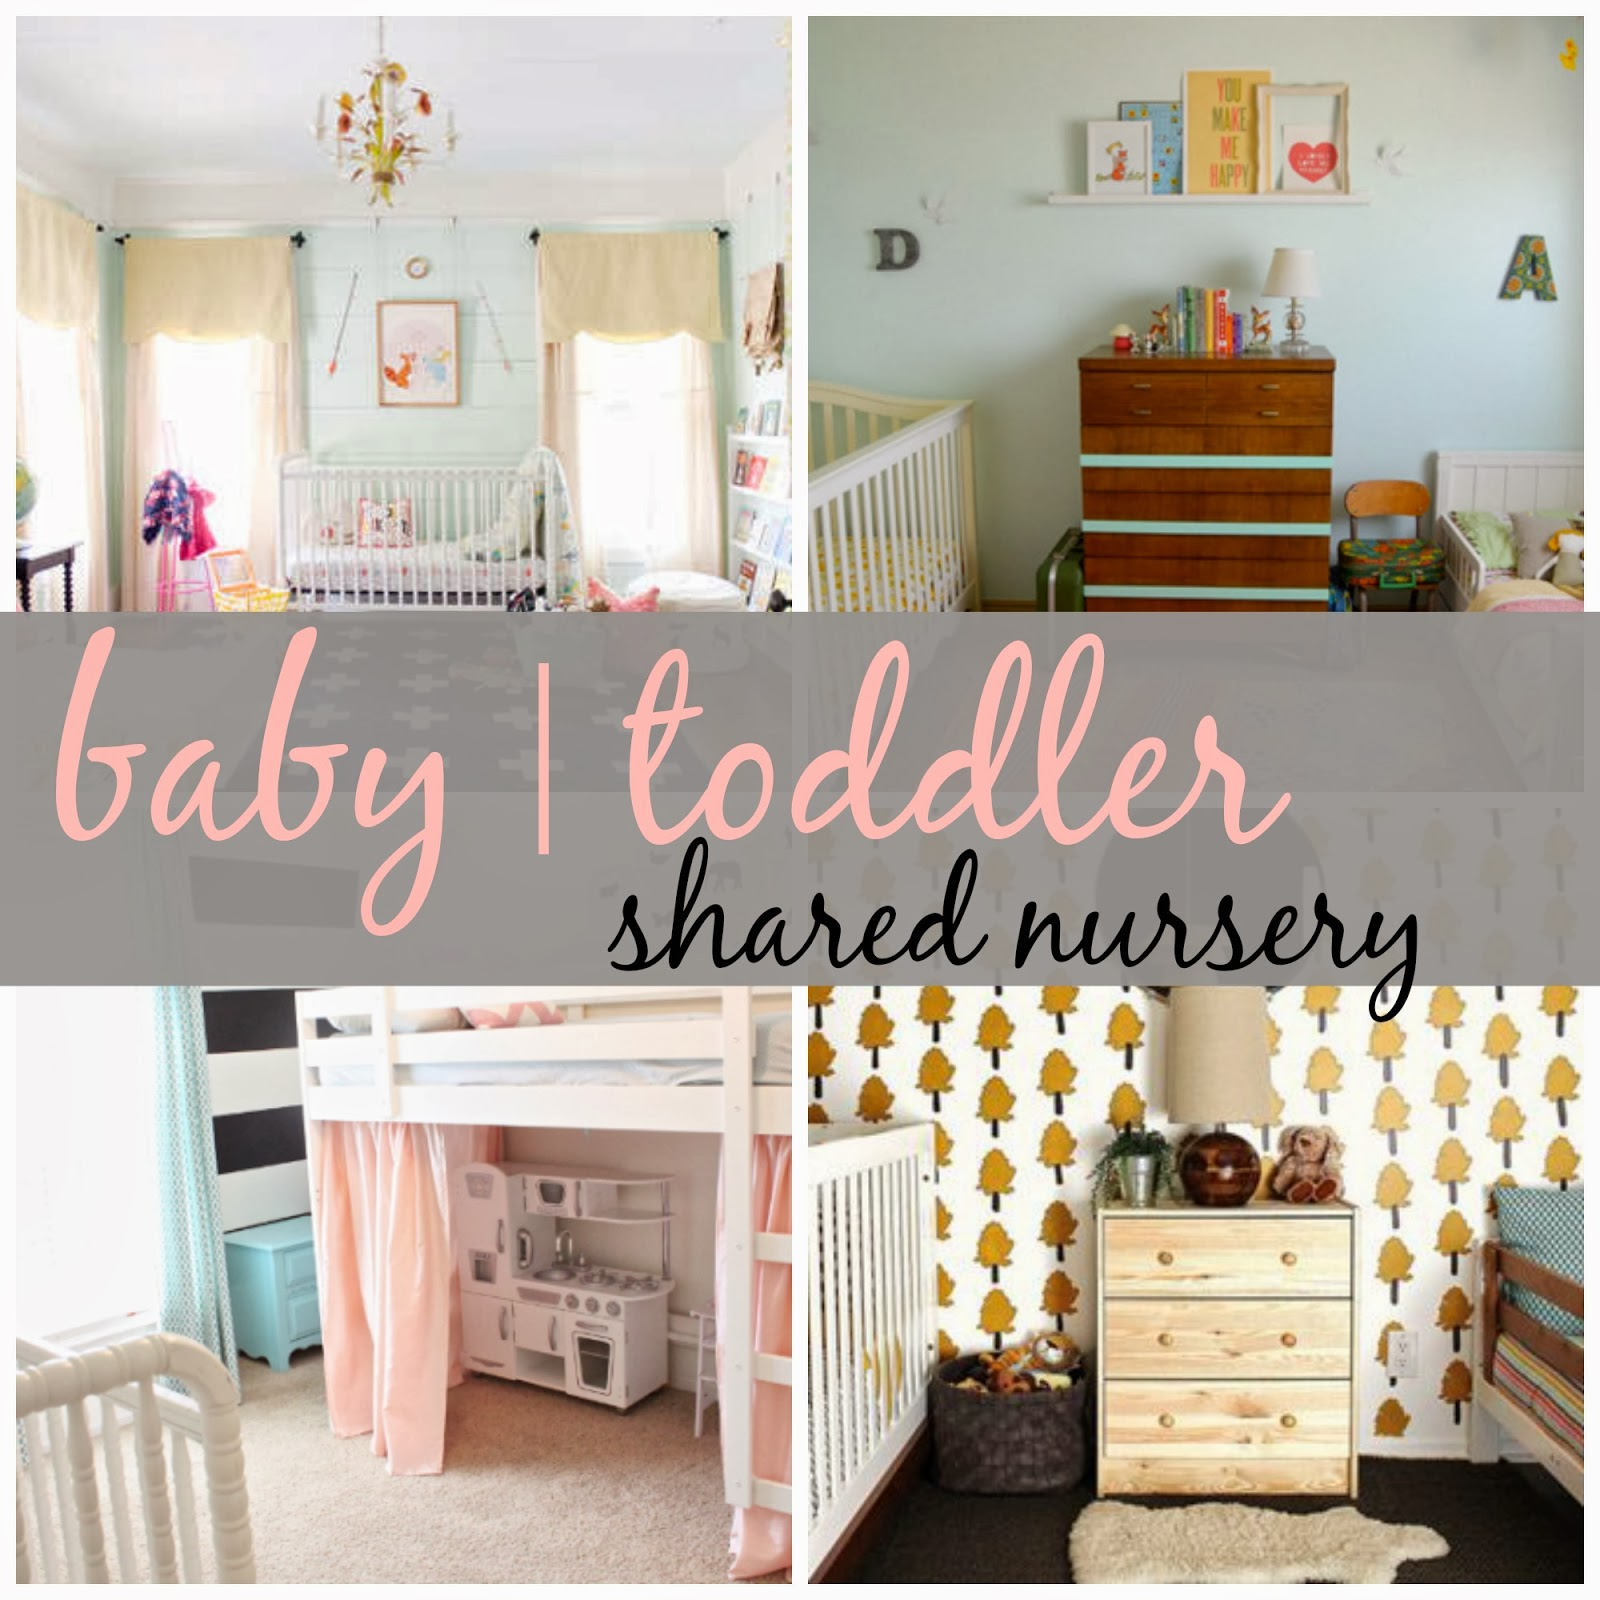 Sharing Bedroom: Joyful Life : Shared Nursery - Baby